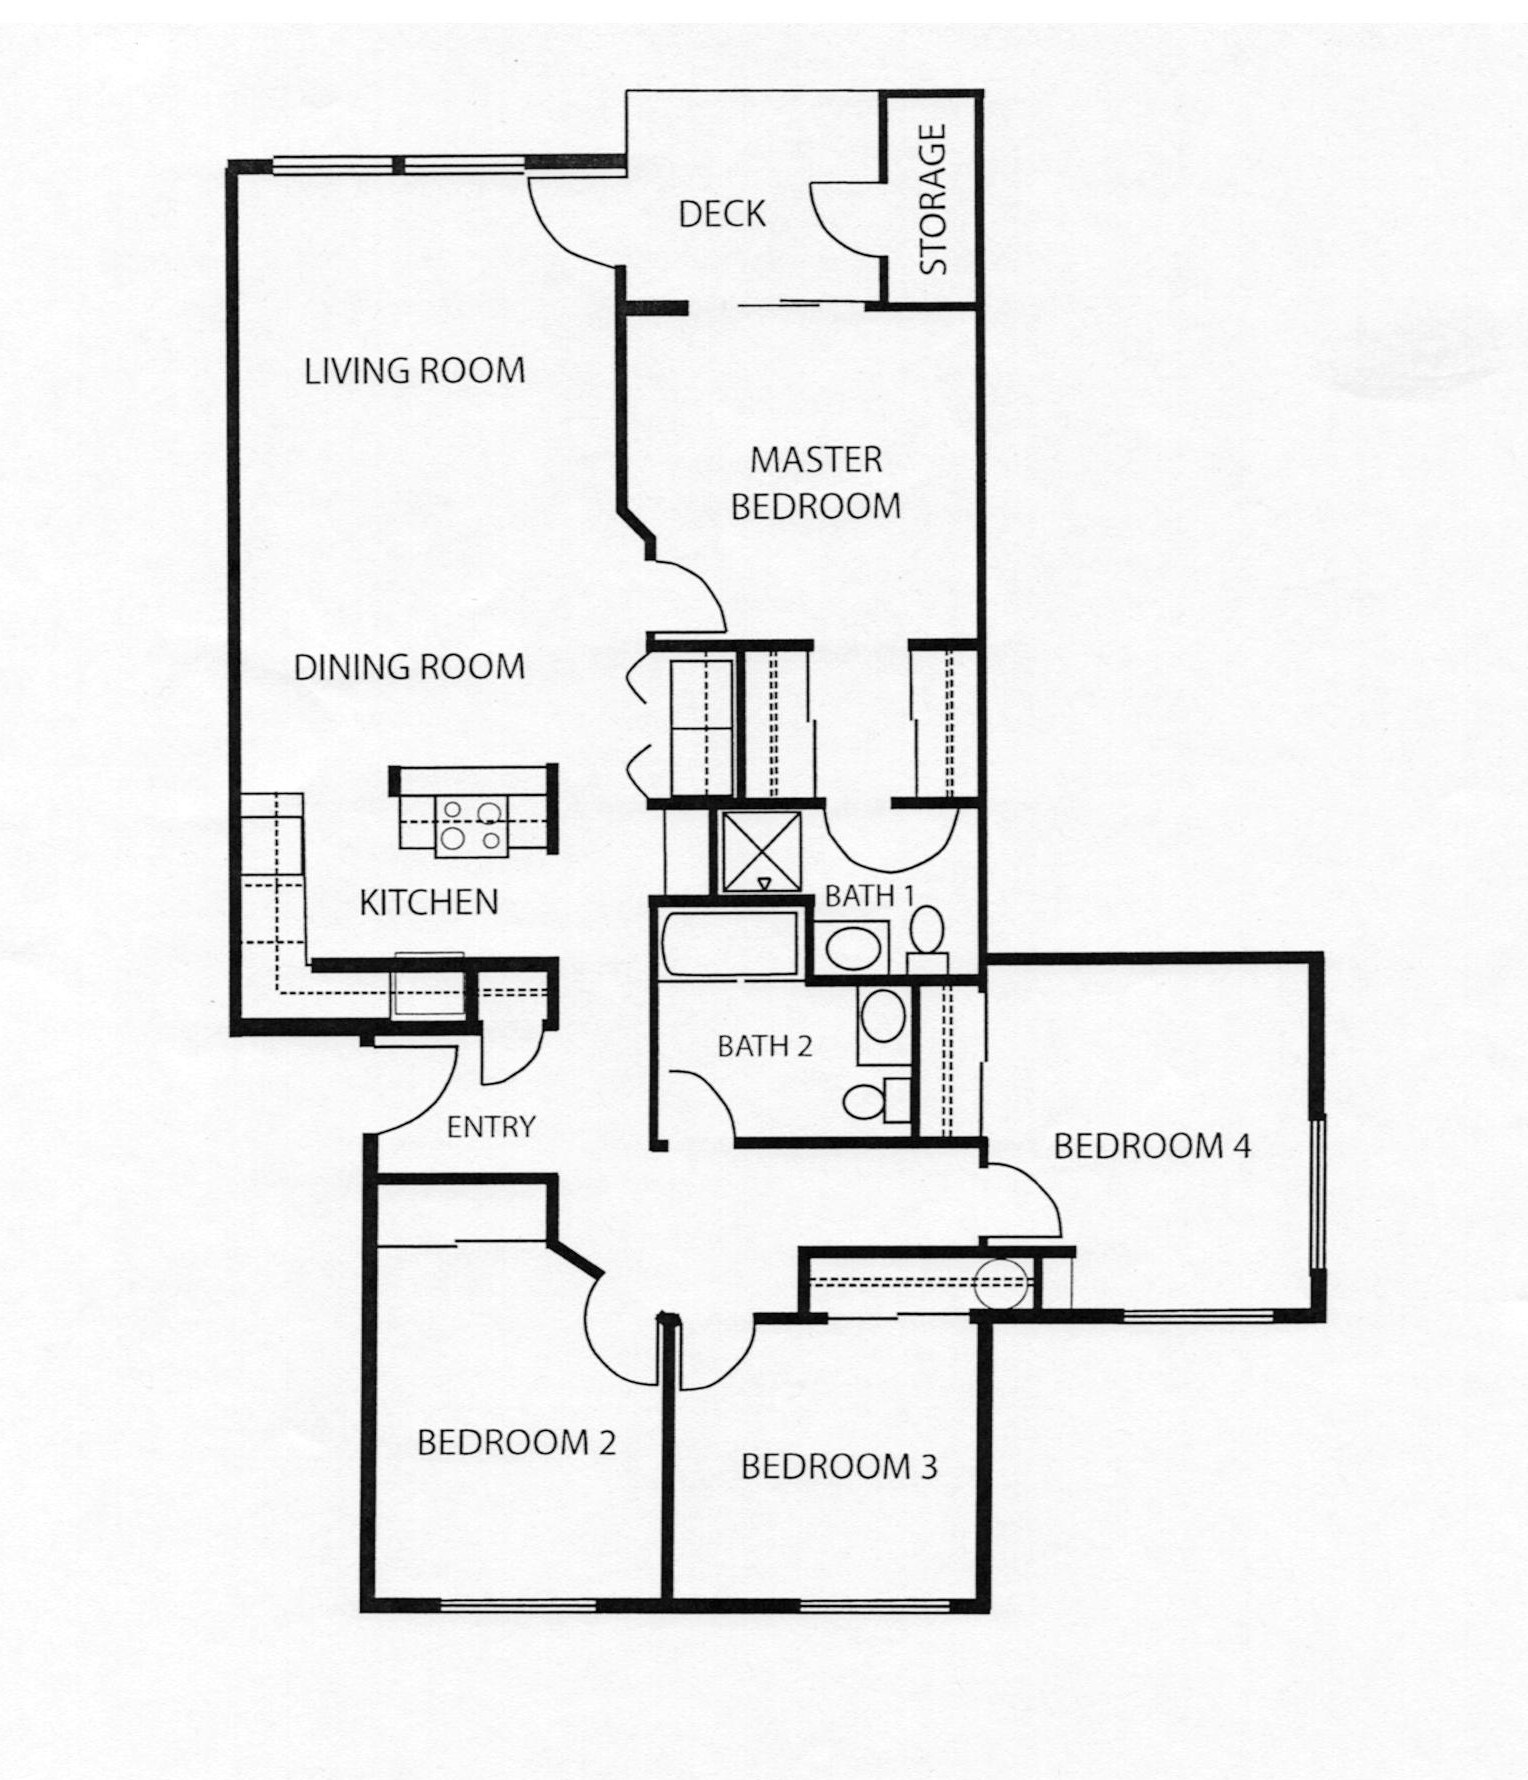 4 Bedroom Floor Plans Pricing And Floor Plans